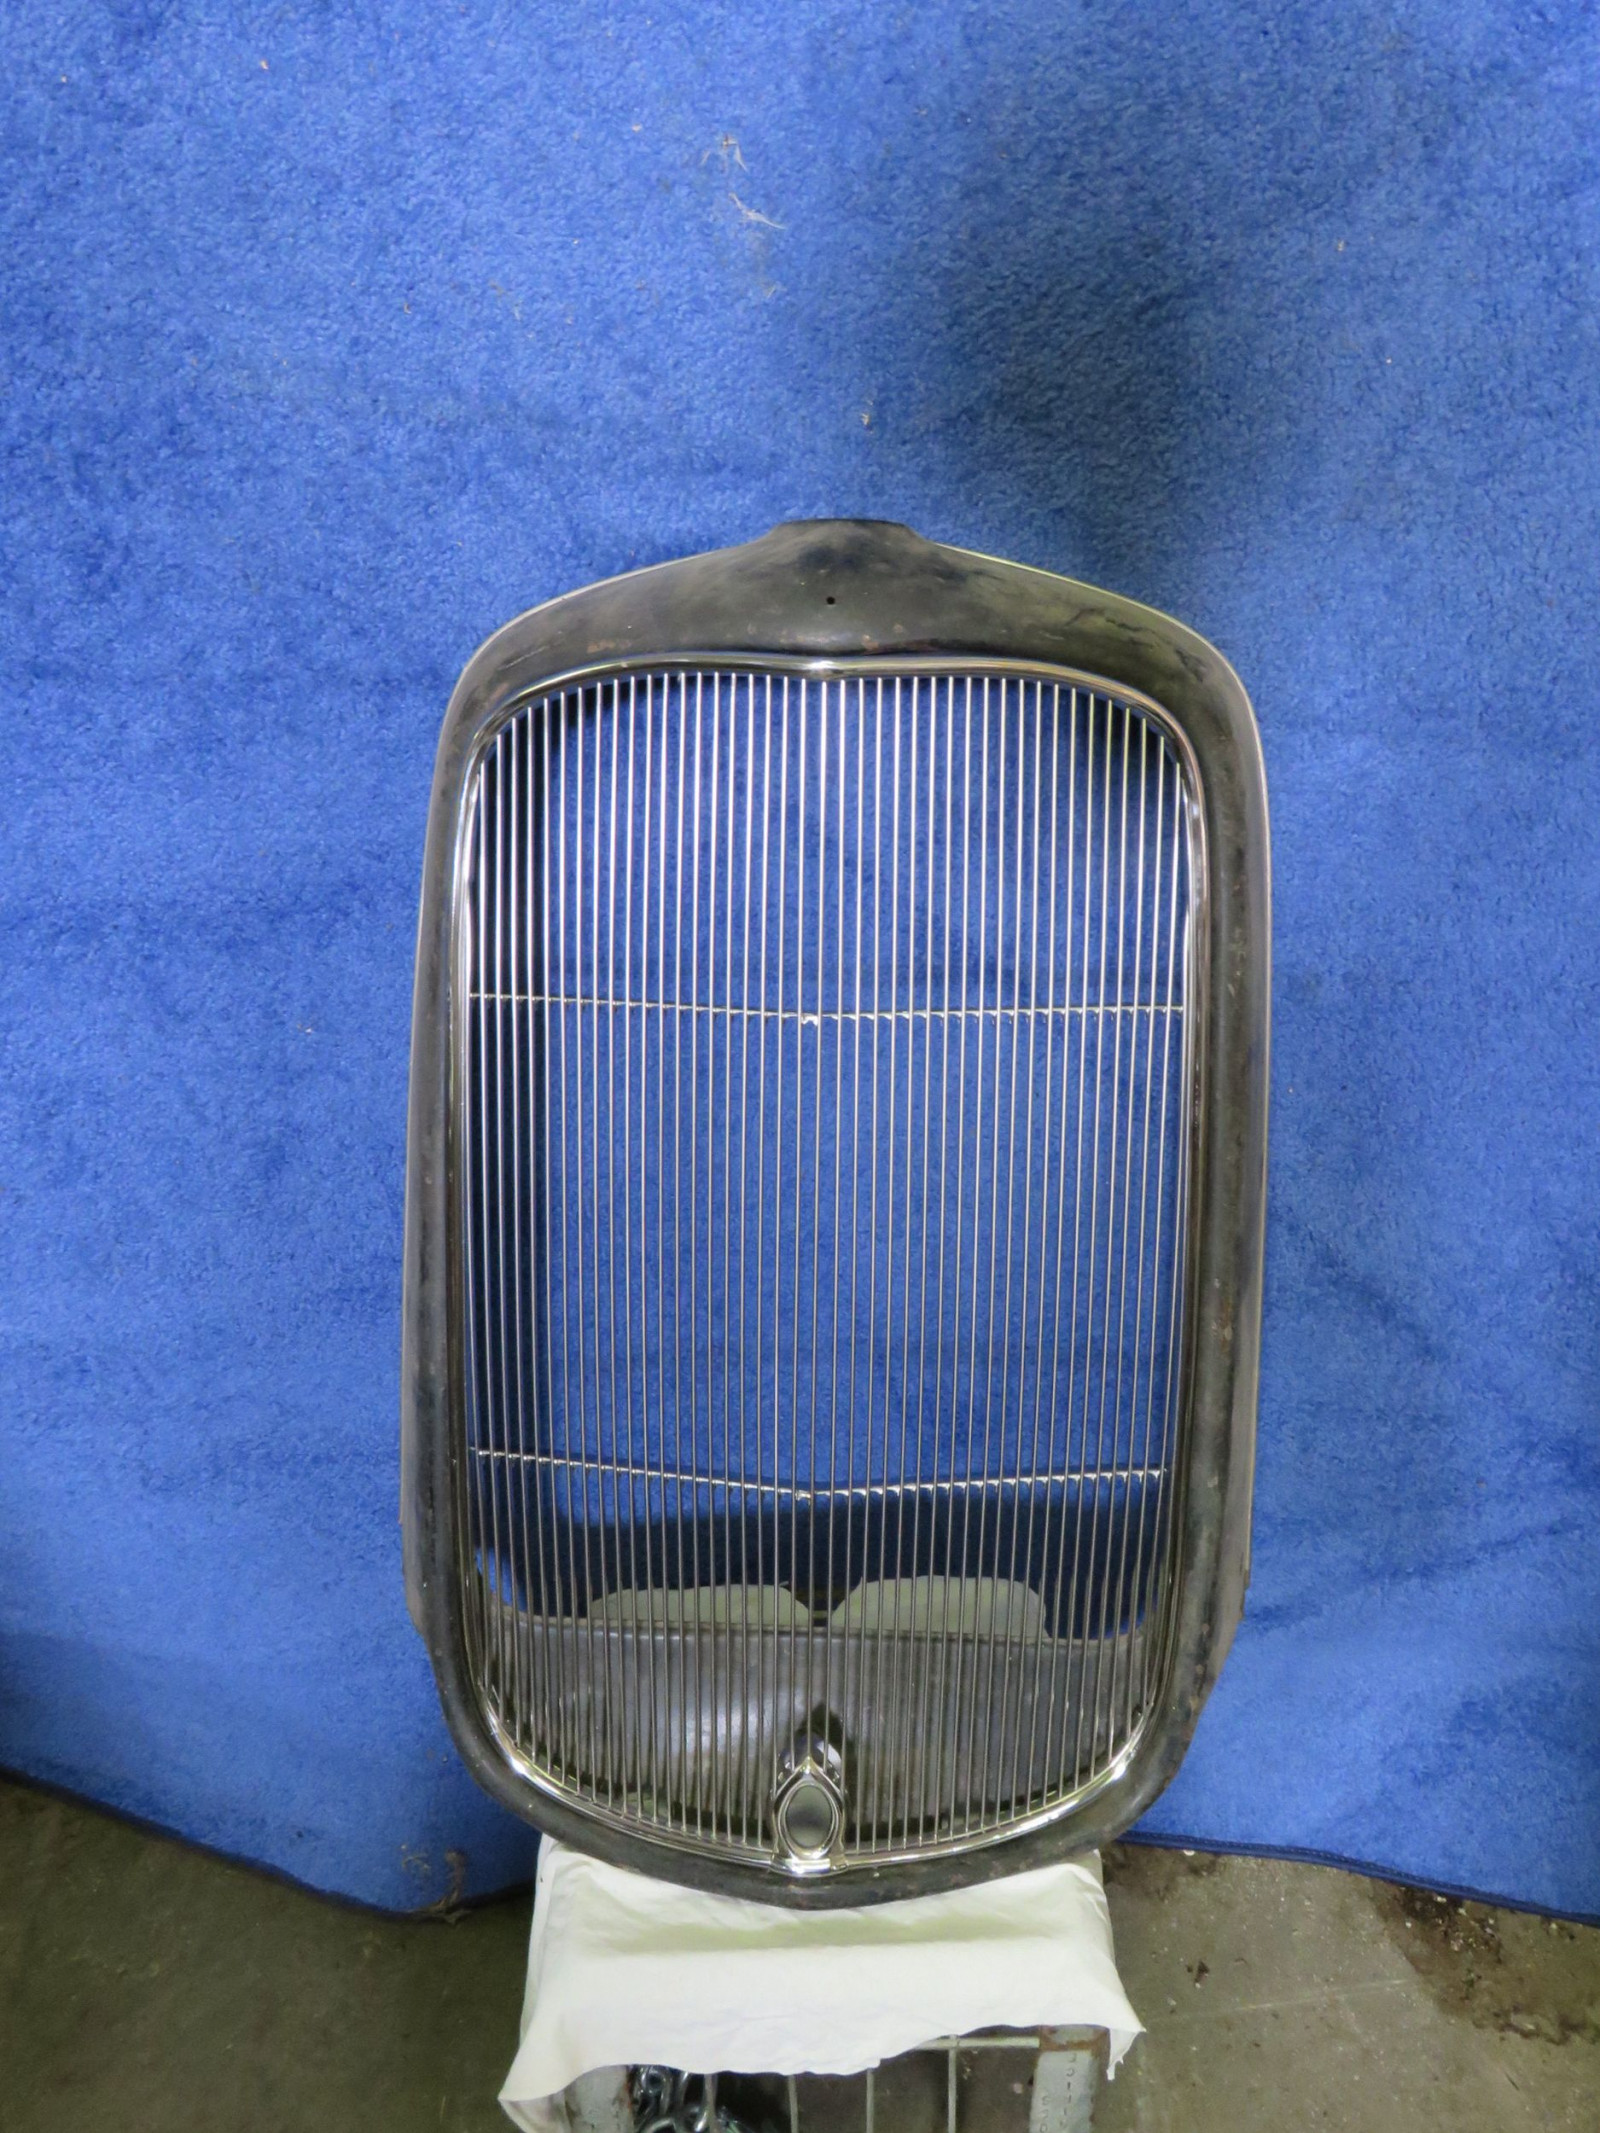 NOS 1932 Ford Grill Shell with Aftermarket Center Grill - Image 1